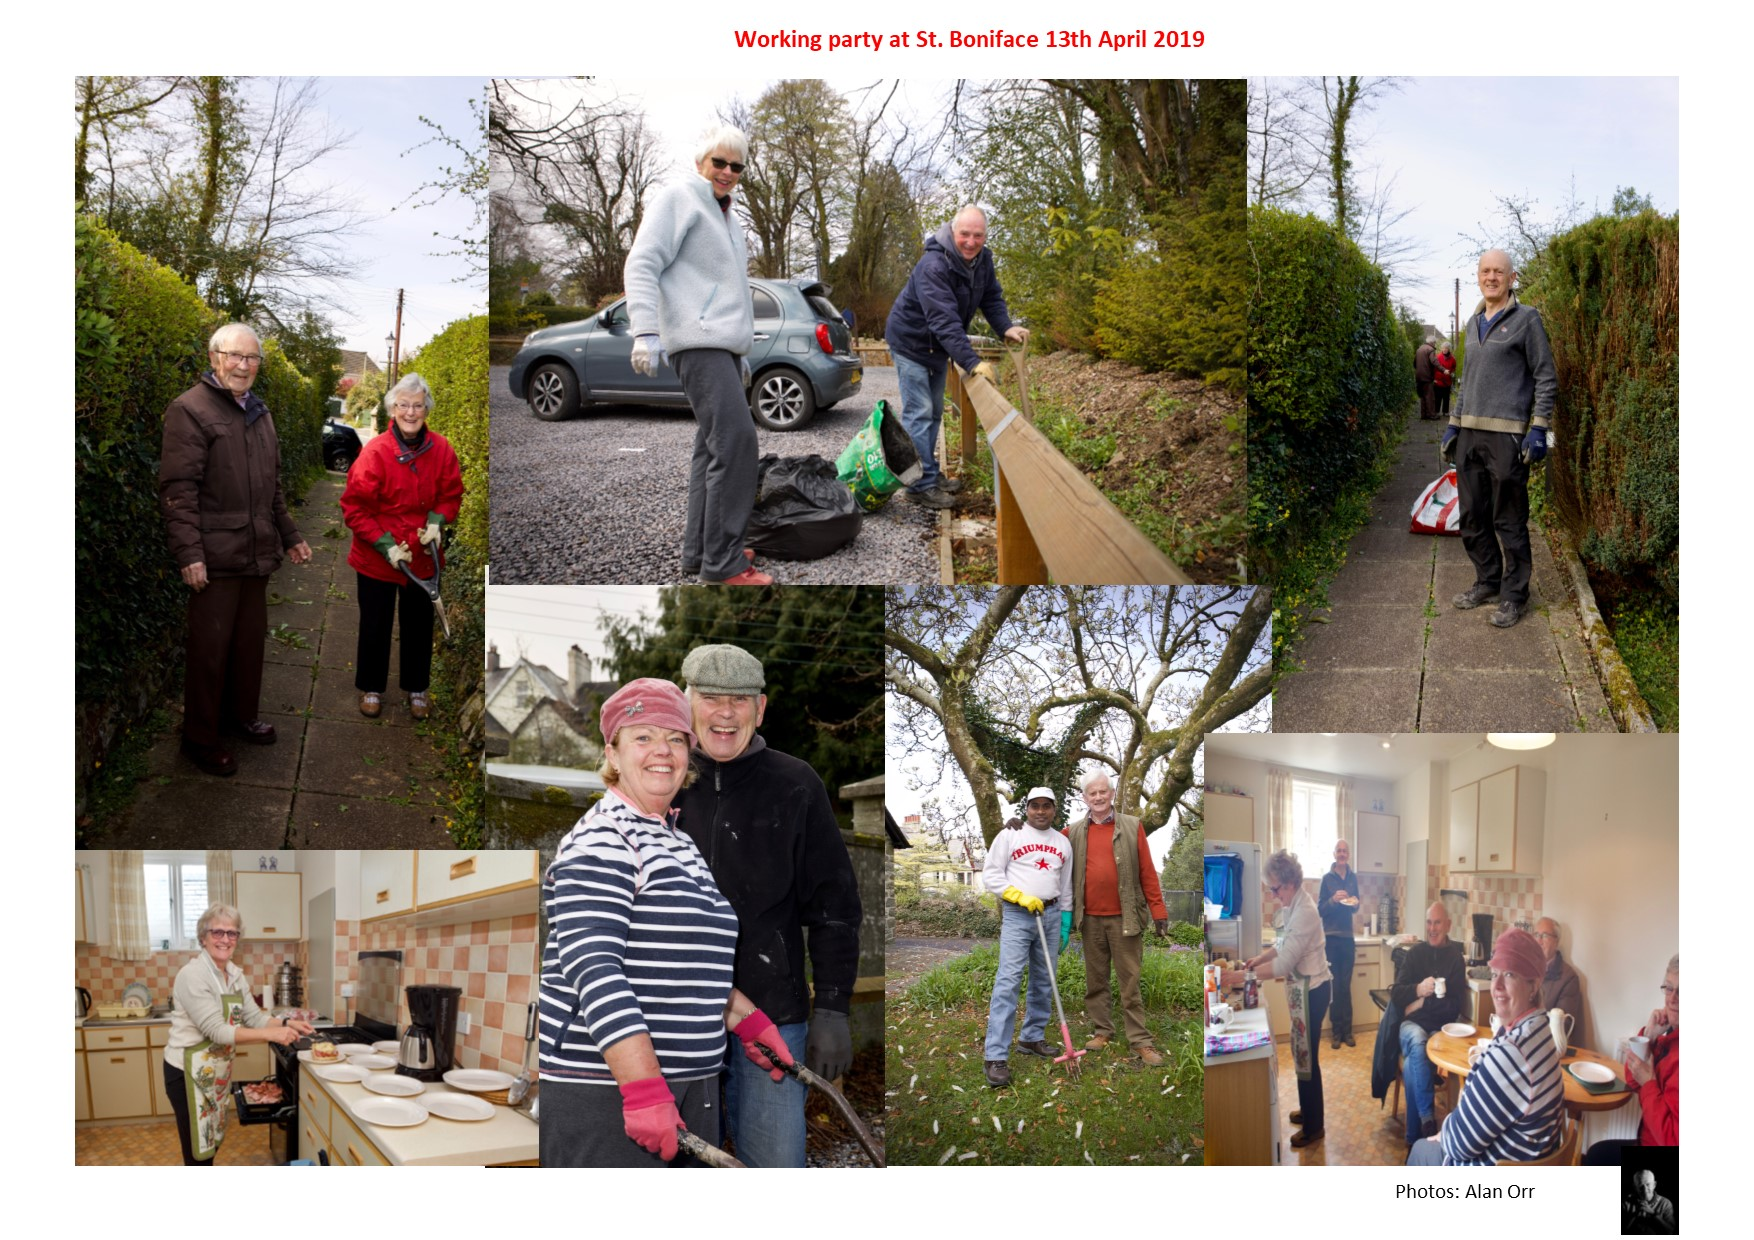 Working Party at St. Boniface 13th April 2019